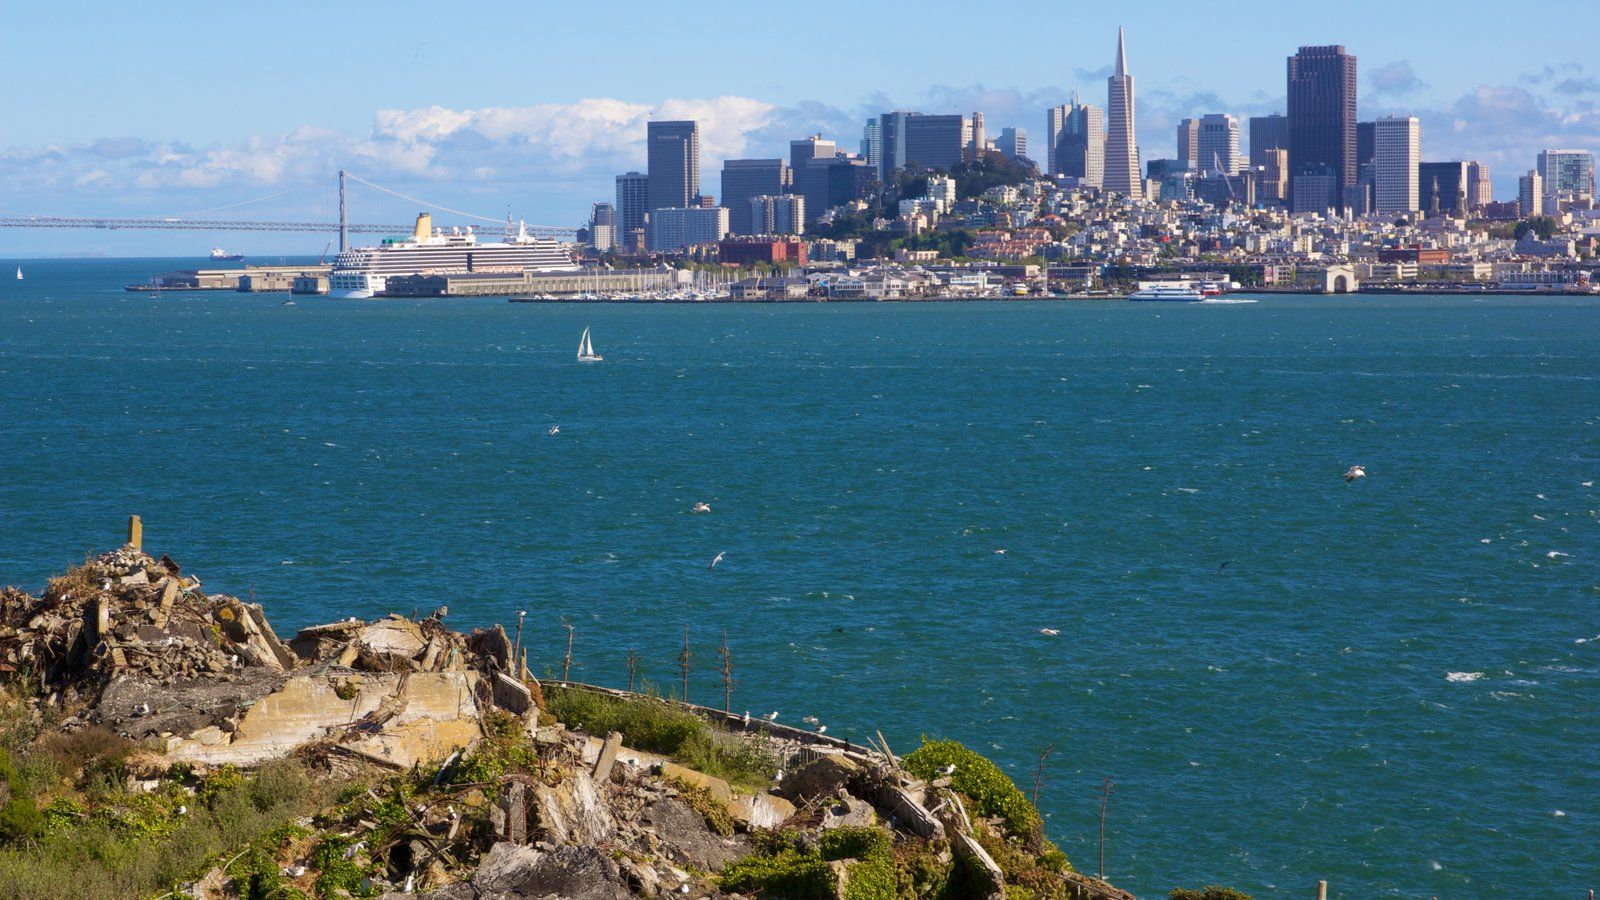 Landscape Pictures: View Images of Alcatraz Island